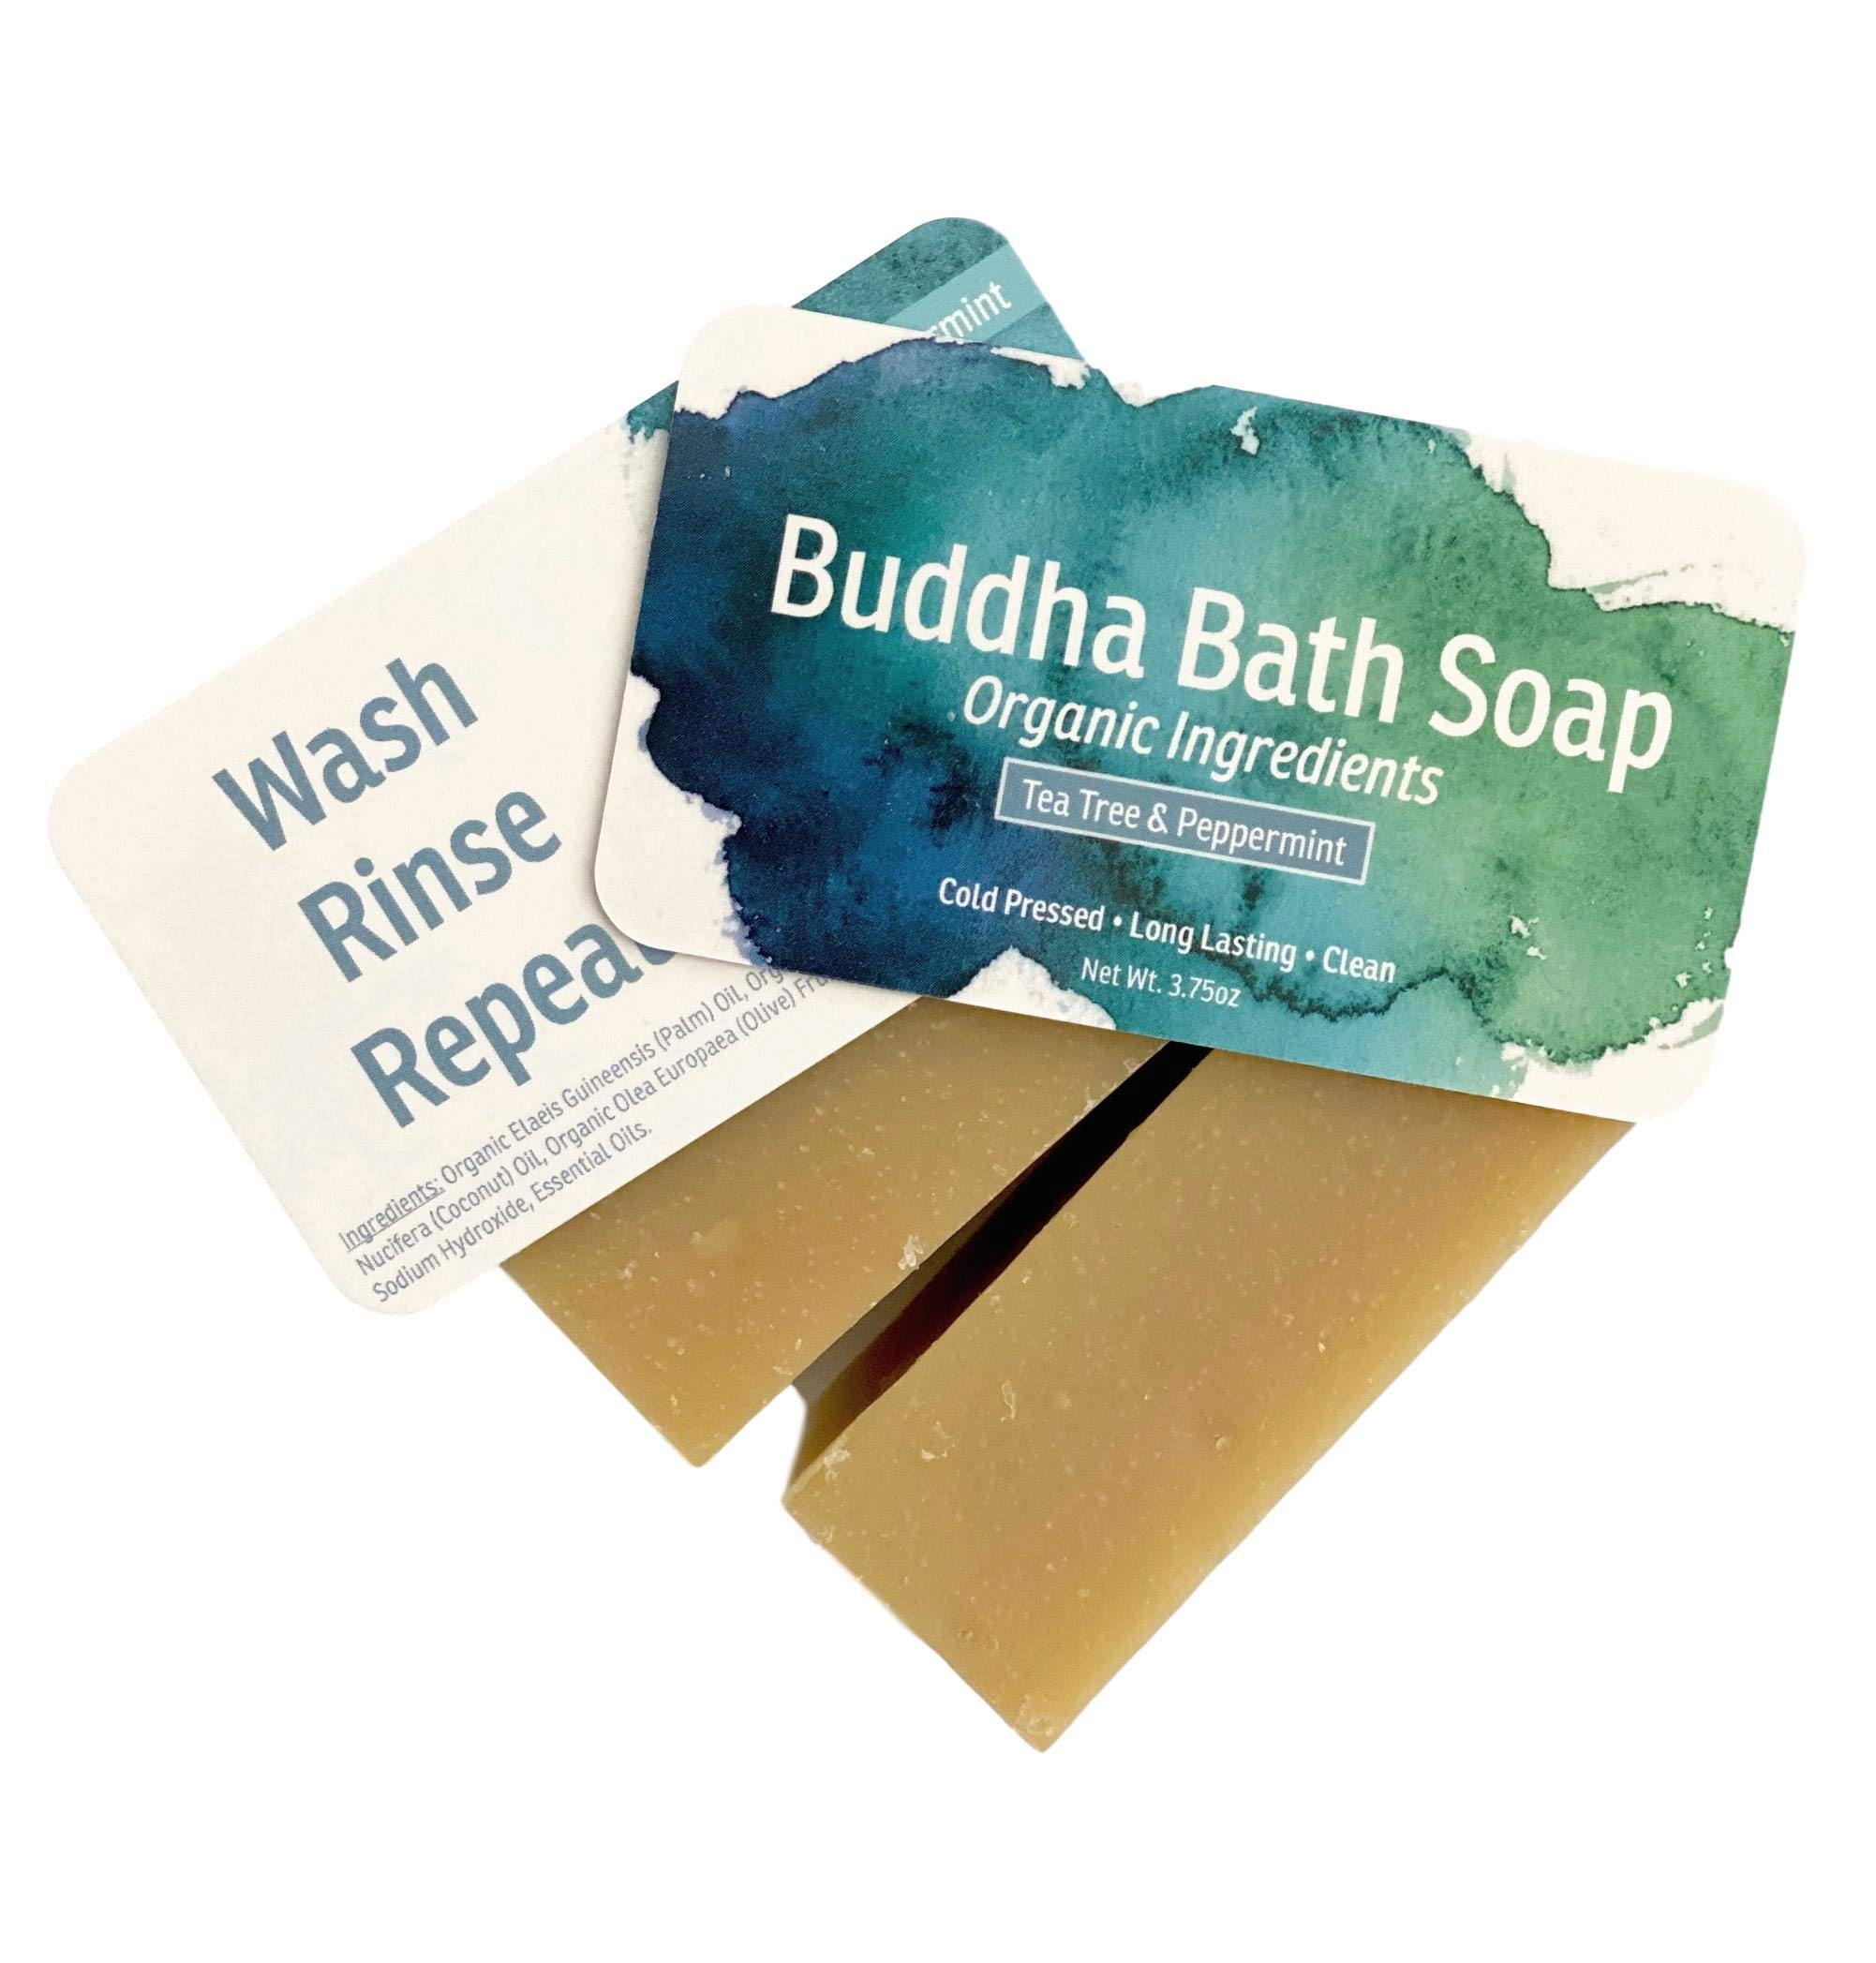 Buddha Bath Tea Tree & Peppermint Hand Face & Body Soap - Helps Acne, Athlete's Foot, Ringworm, Jock Itch. All Natural - Cold Pressed - Organic - All Natural - for Men and Women(2 Bars)